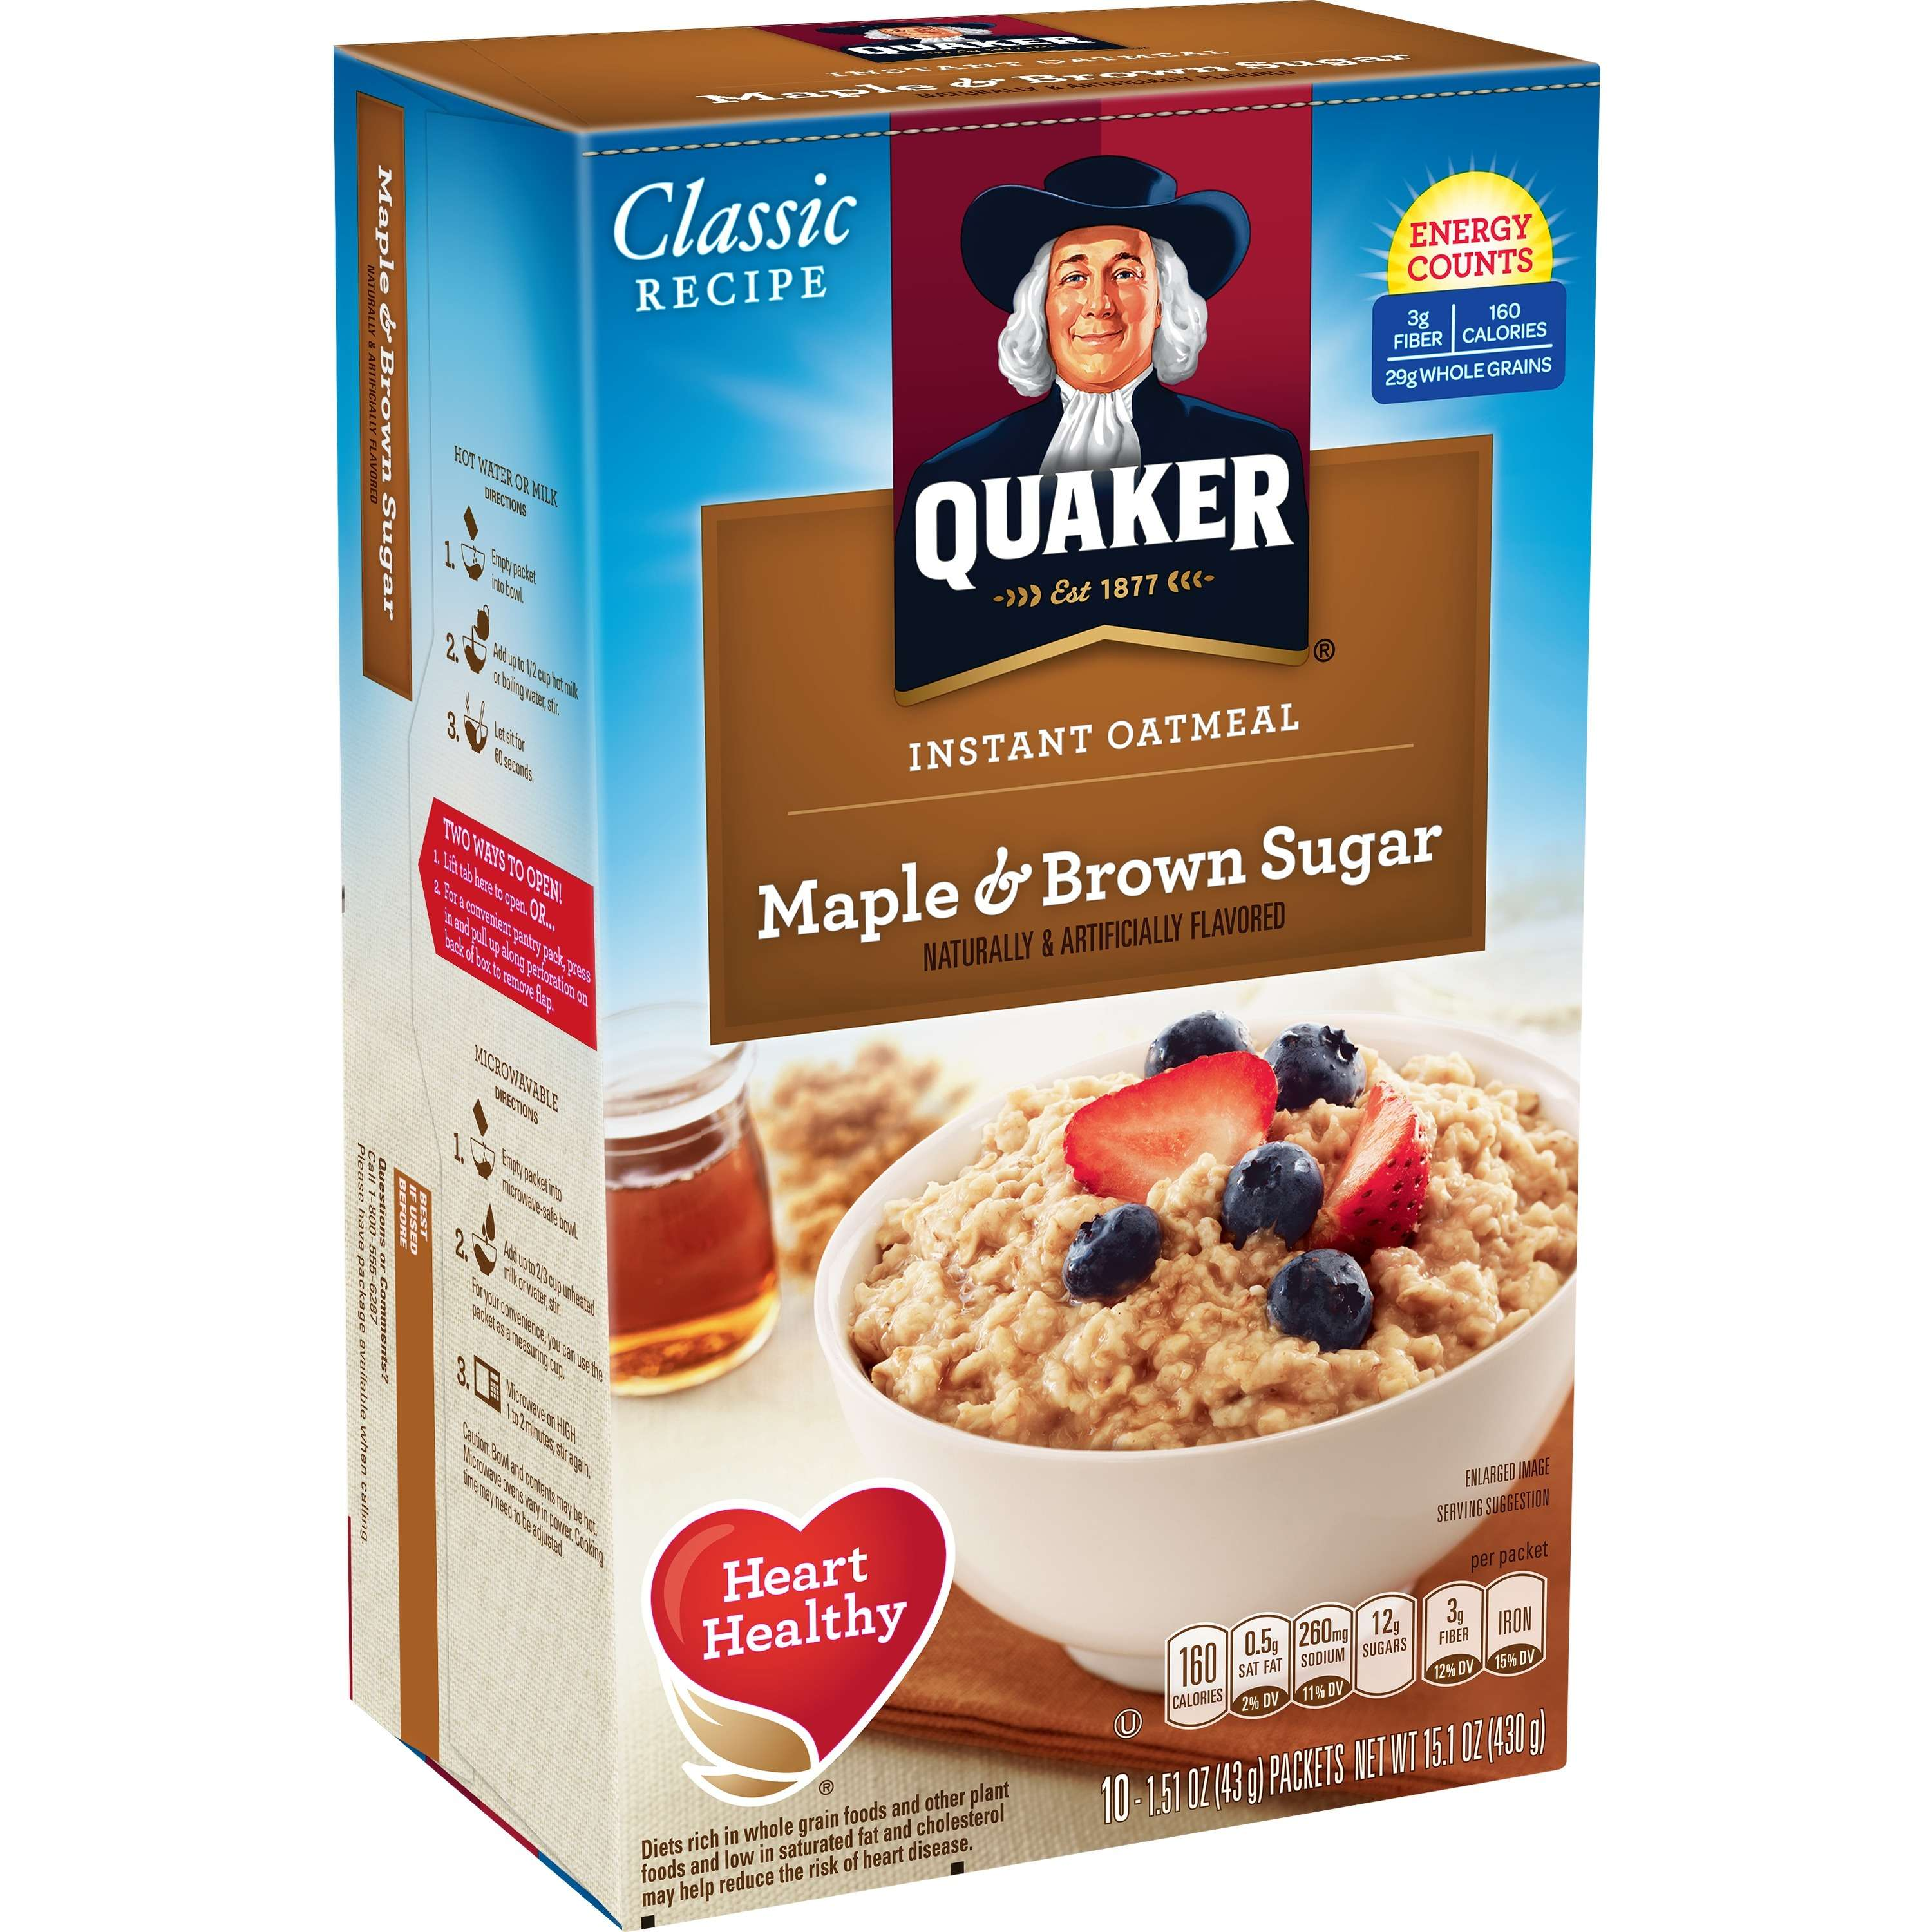 Quaker Instant Oatmeal, Maple & Brown Sugar, 10 Packets